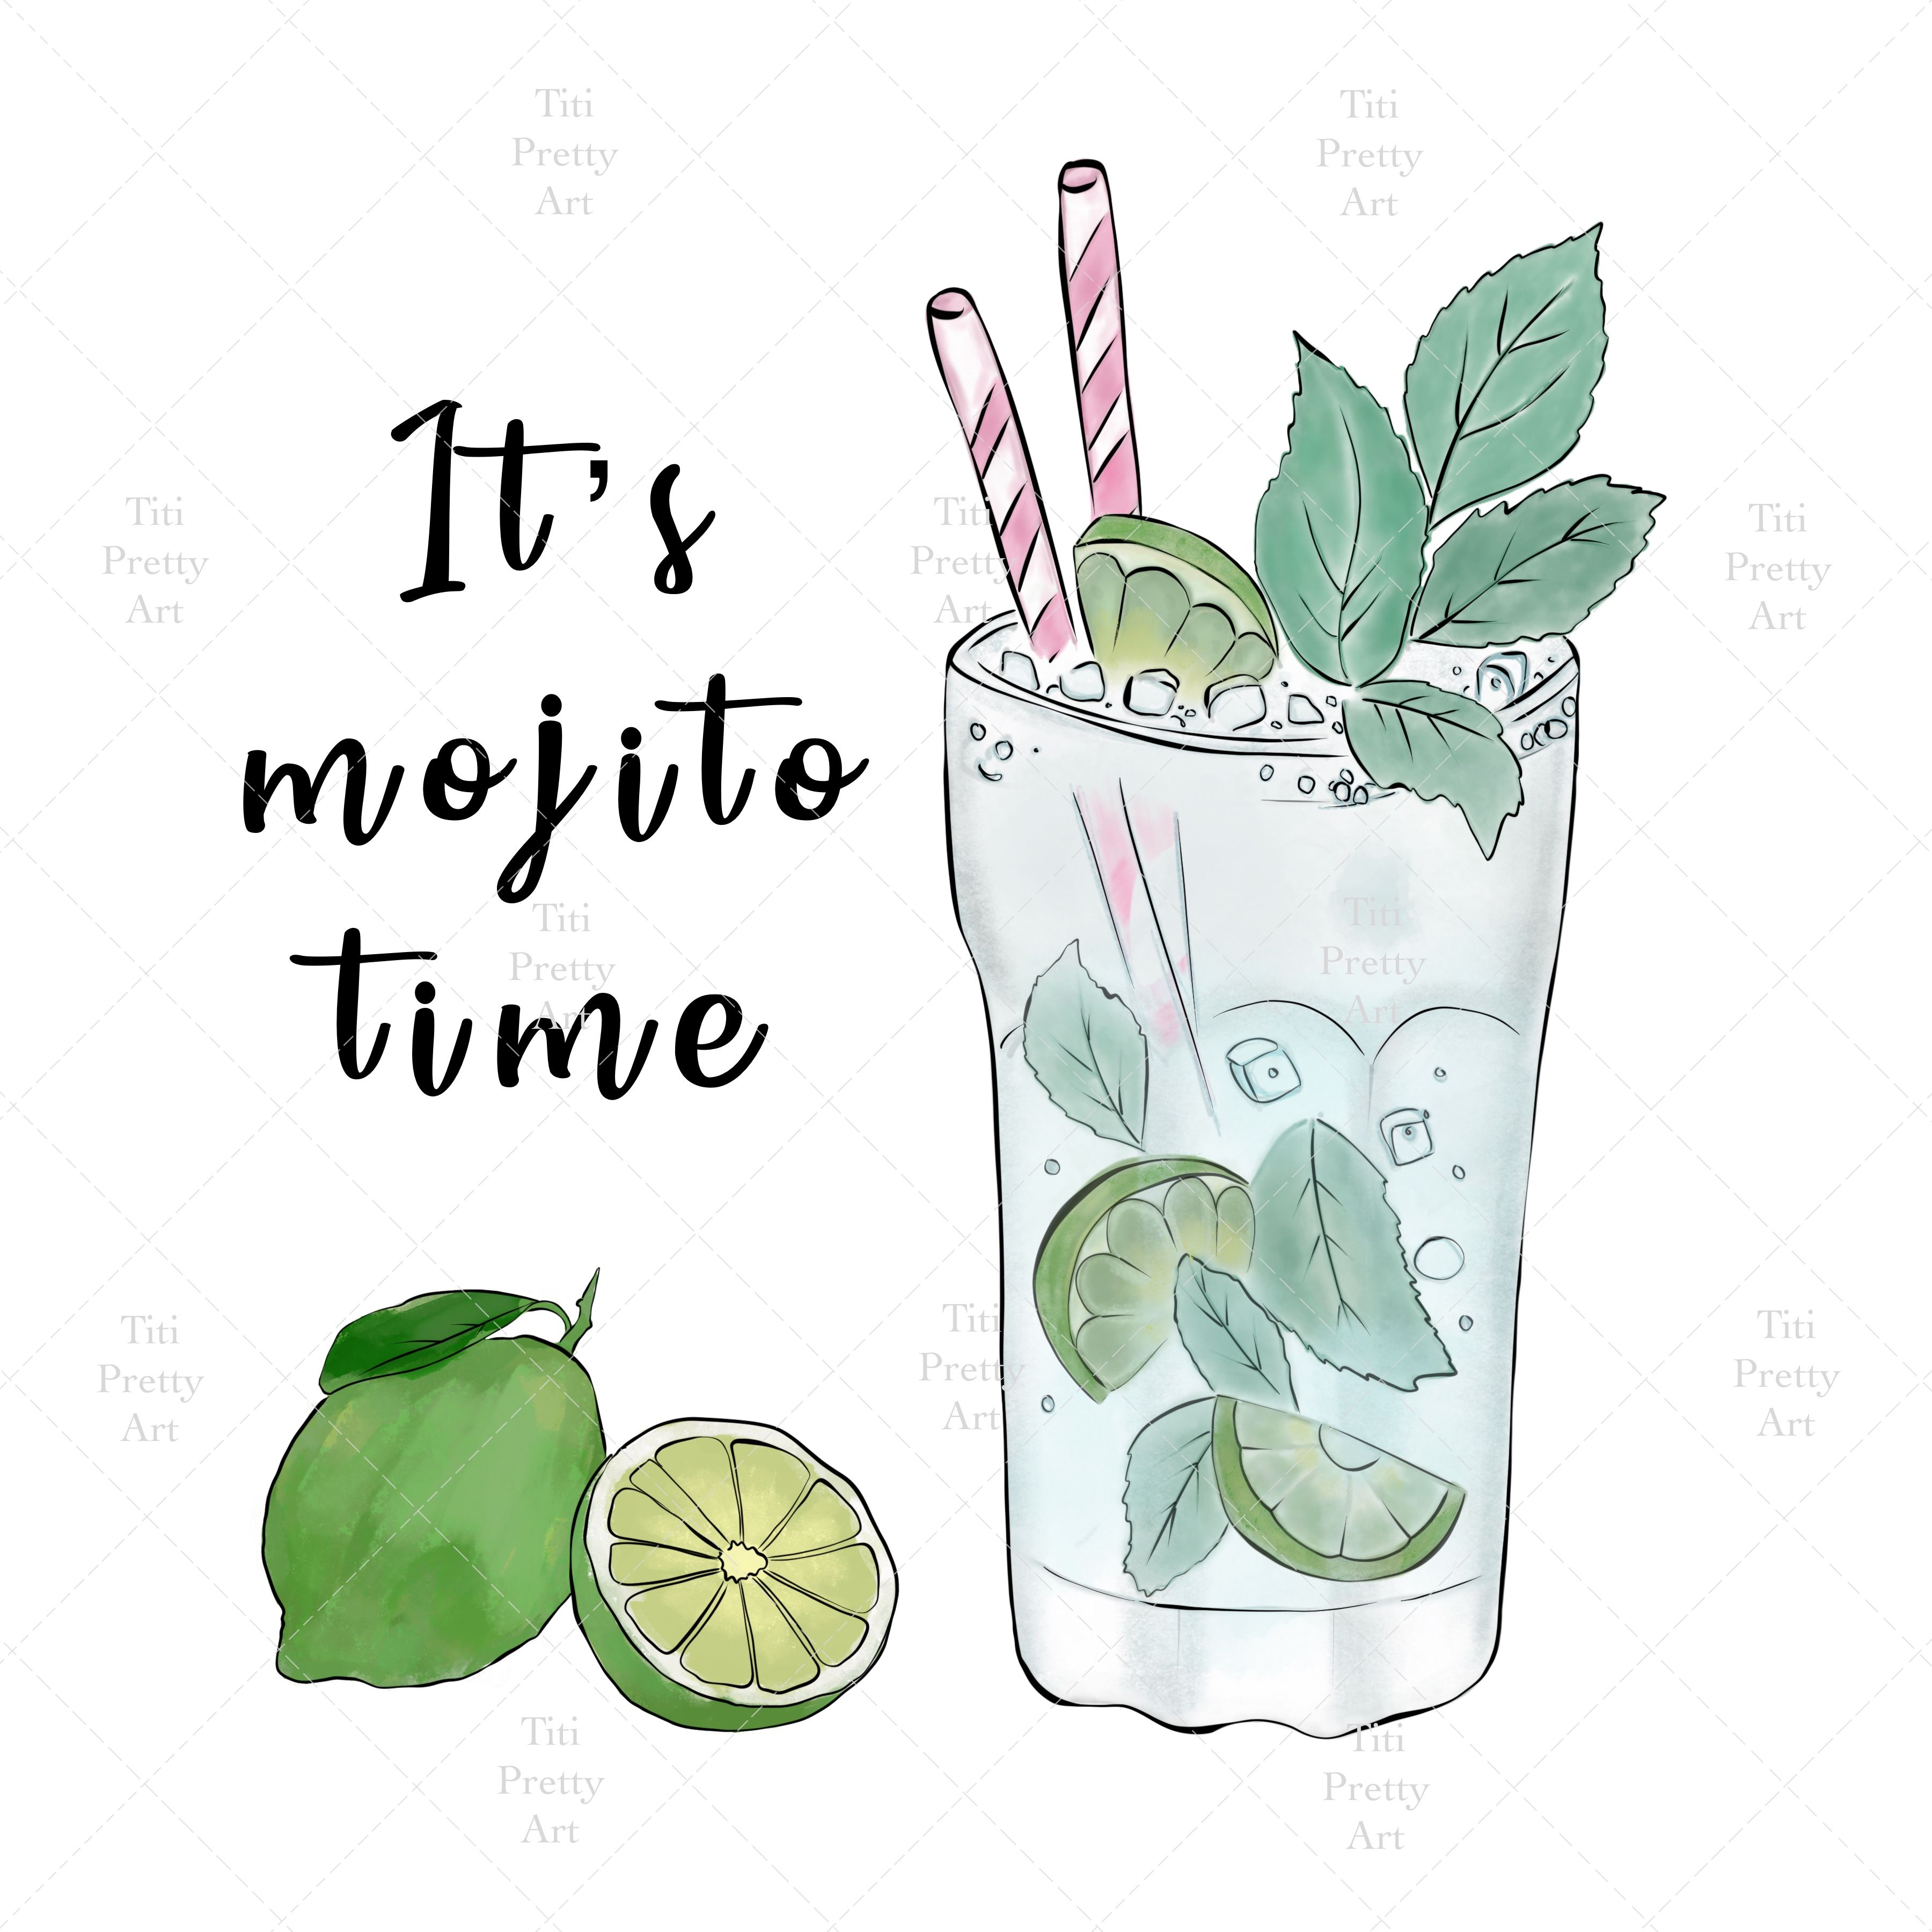 Mojito Cocktail Sublimation Png Design Hand Drawn Digital Etsy In 2021 Mojito Cocktails Drawing Drinks Design